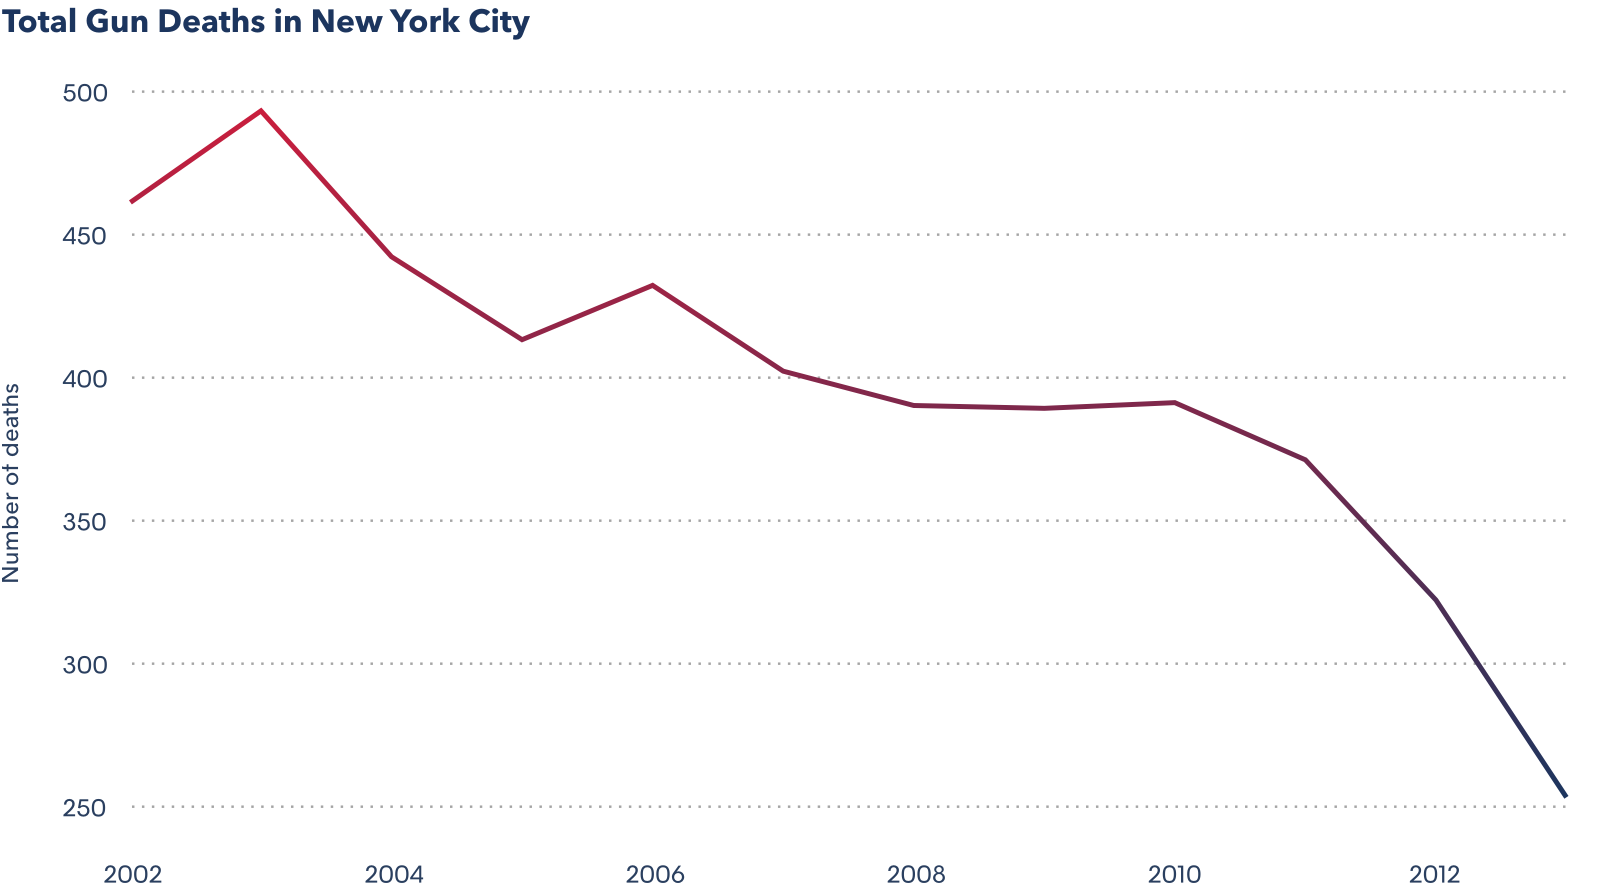 Source: Summary of Vital Statistics for the City of New York 2002-2013